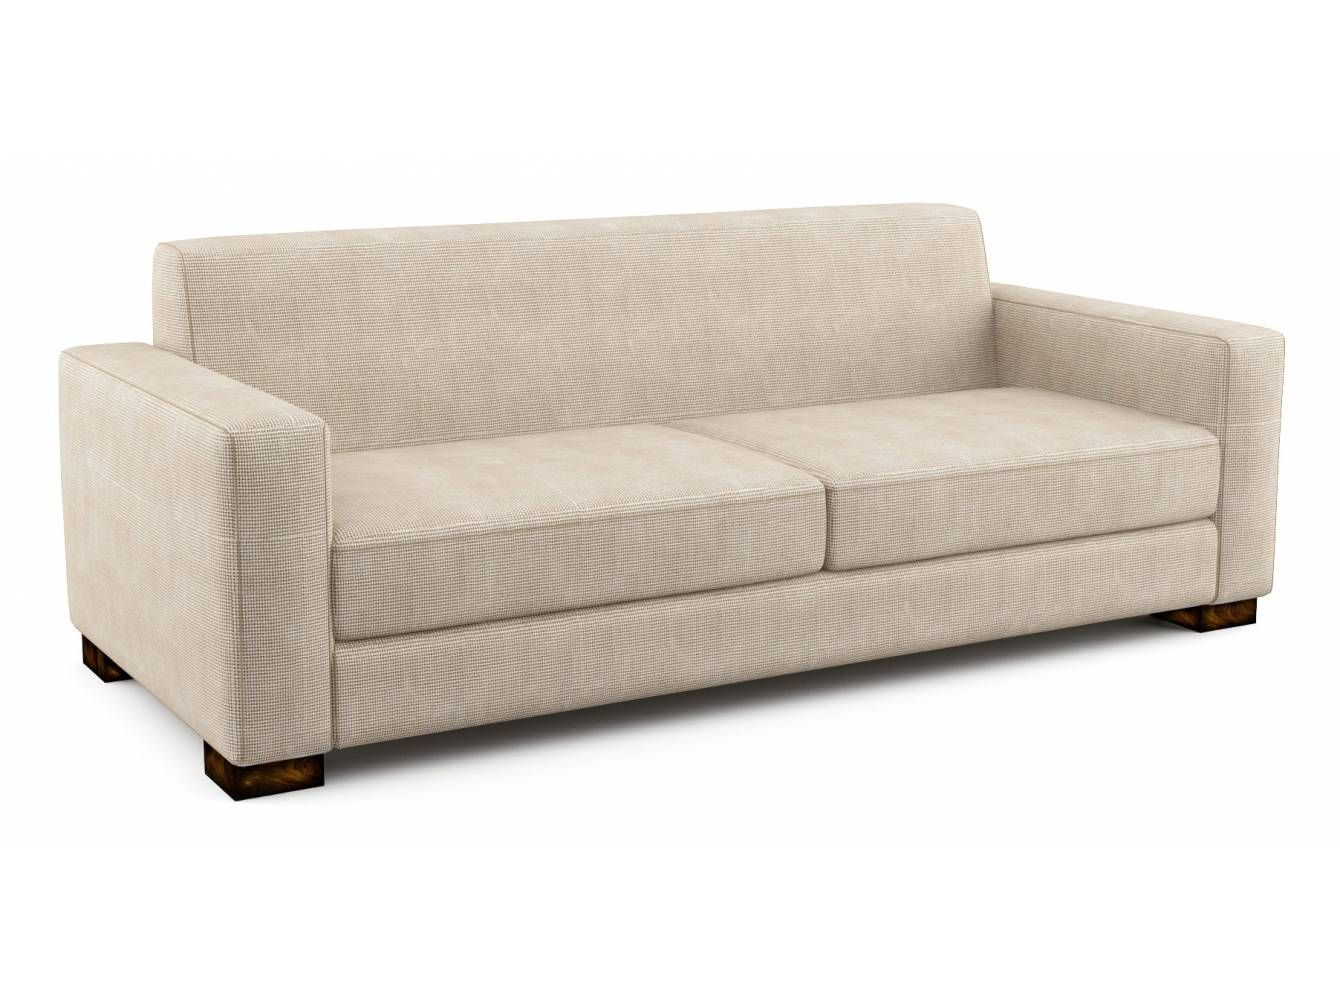 Marvelous Brenem Sofa Sustainable Sofas Sofa Love Seat Outdoor Onthecornerstone Fun Painted Chair Ideas Images Onthecornerstoneorg